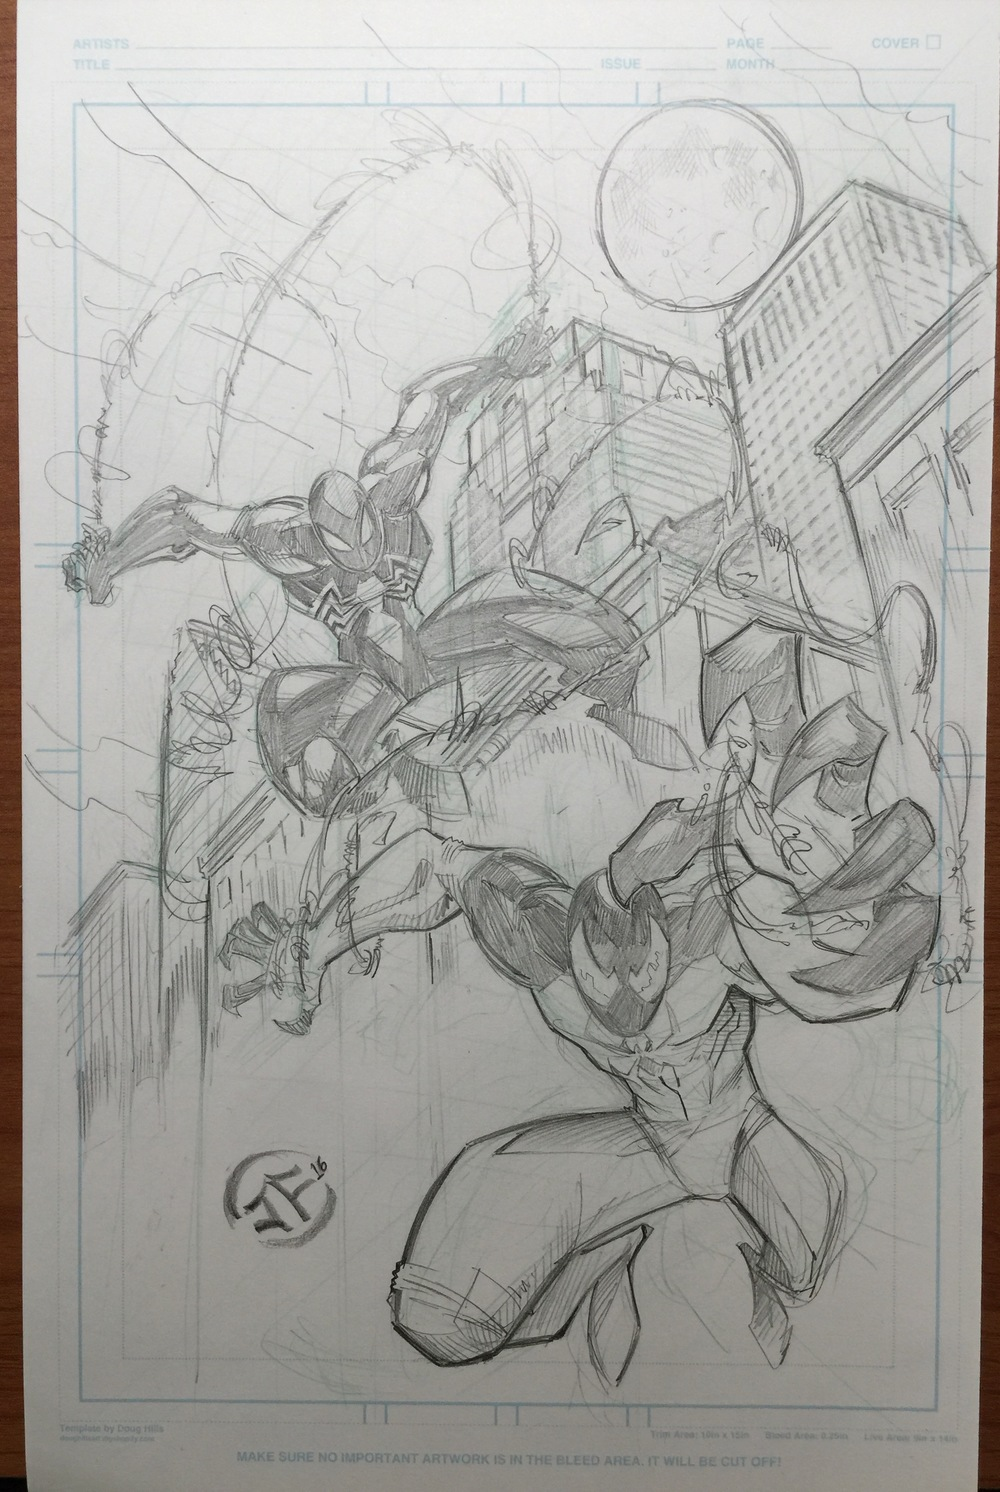 Scarlet Spiderman and black suiterd spiderman commission